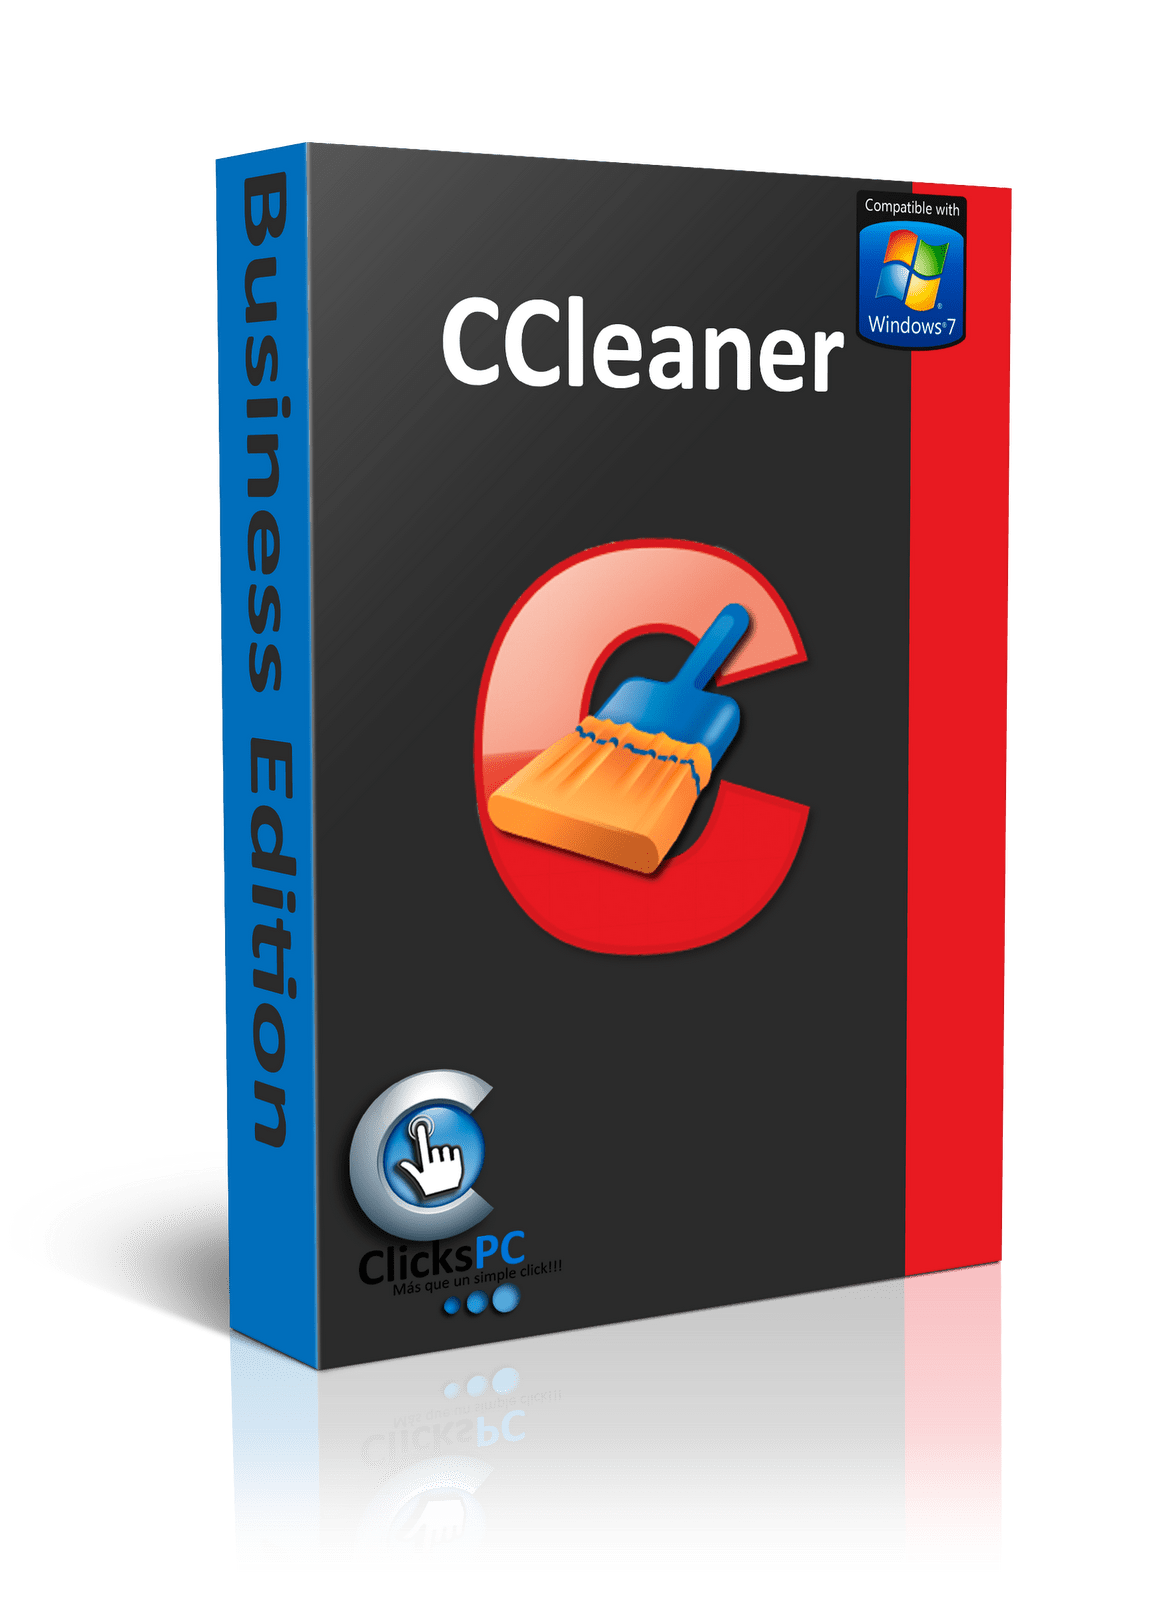 CCleaner Pro 5.58.7209 Crack With License Key Free Download